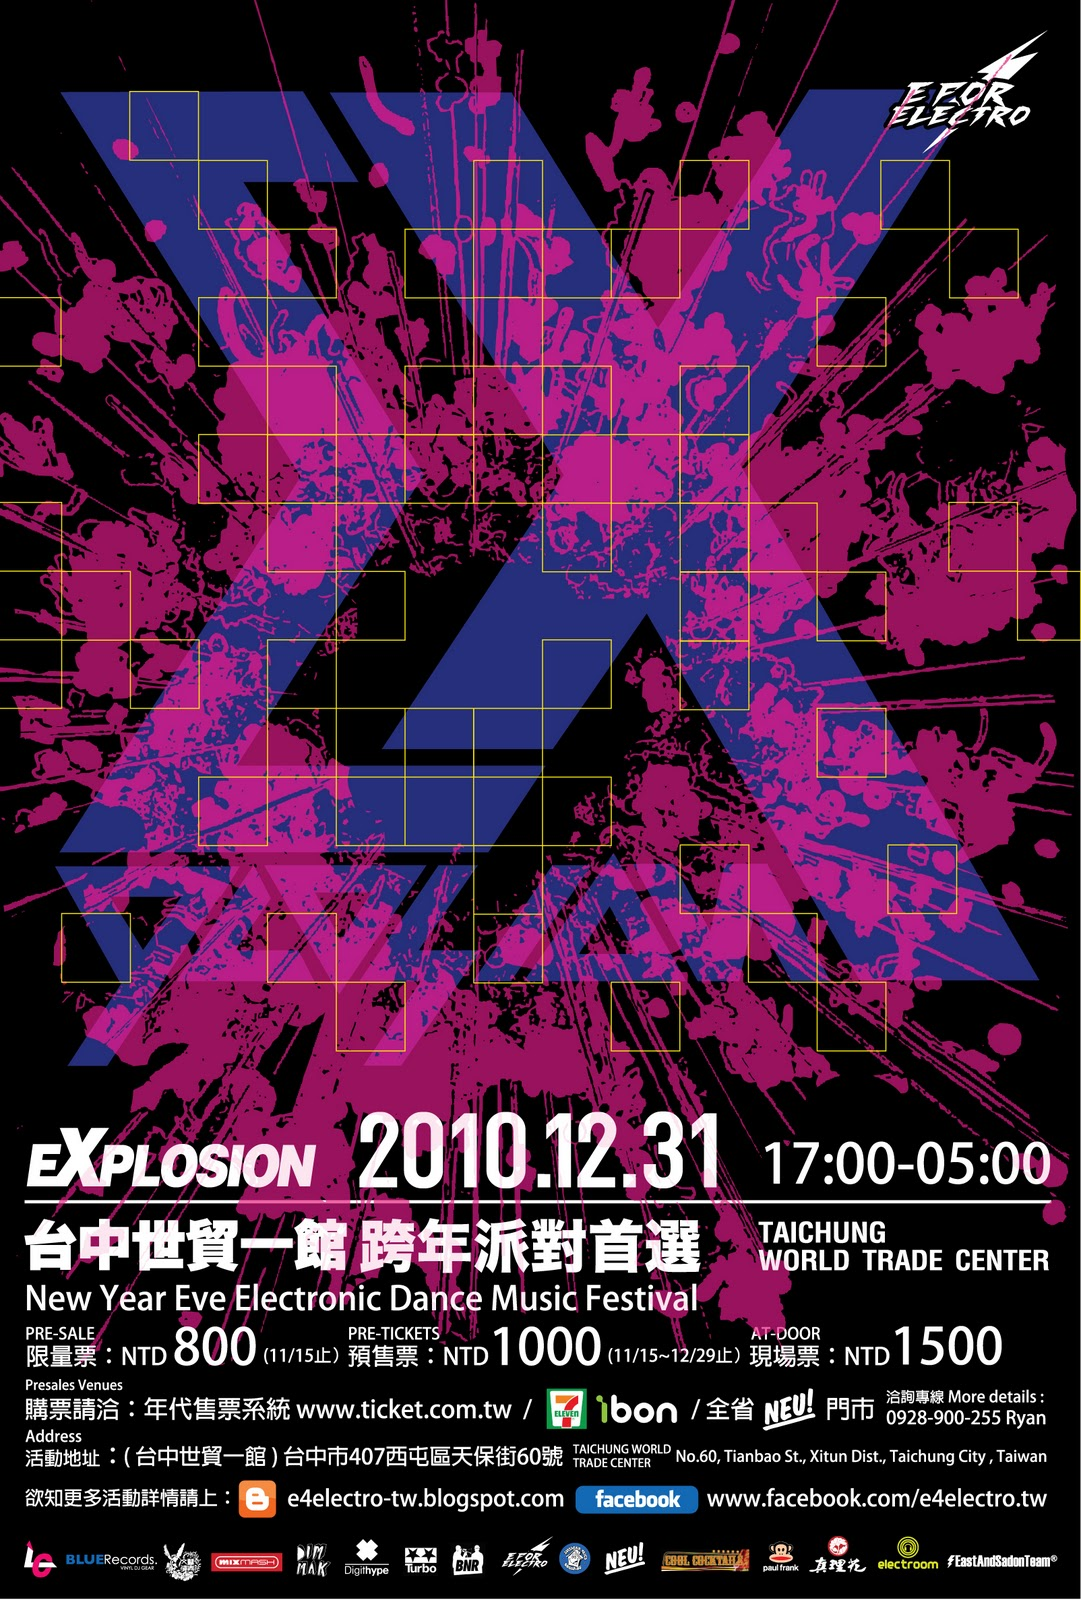 electroom╳電誌: 20101231|E for Electro 2011 New Year Eve 跨年派對巨獻 @ 臺中市貿一館